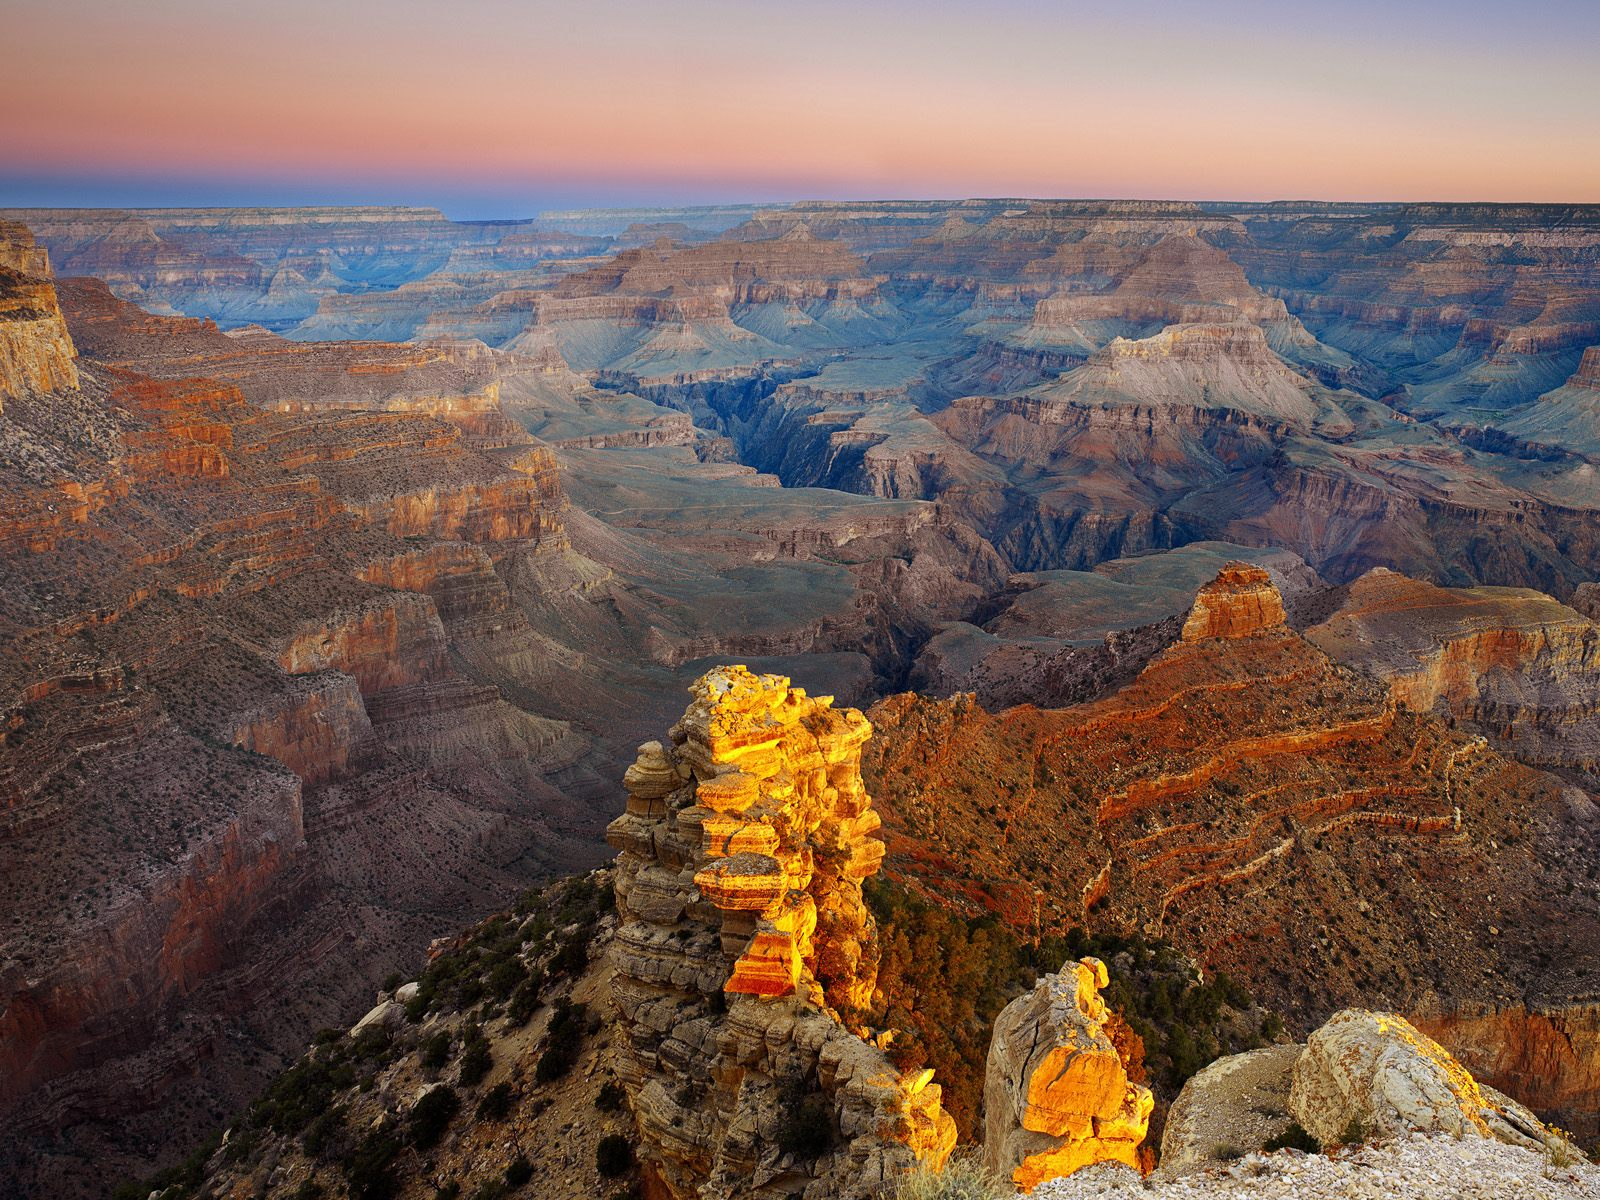 Grand Canyon, U.S.A, Overview